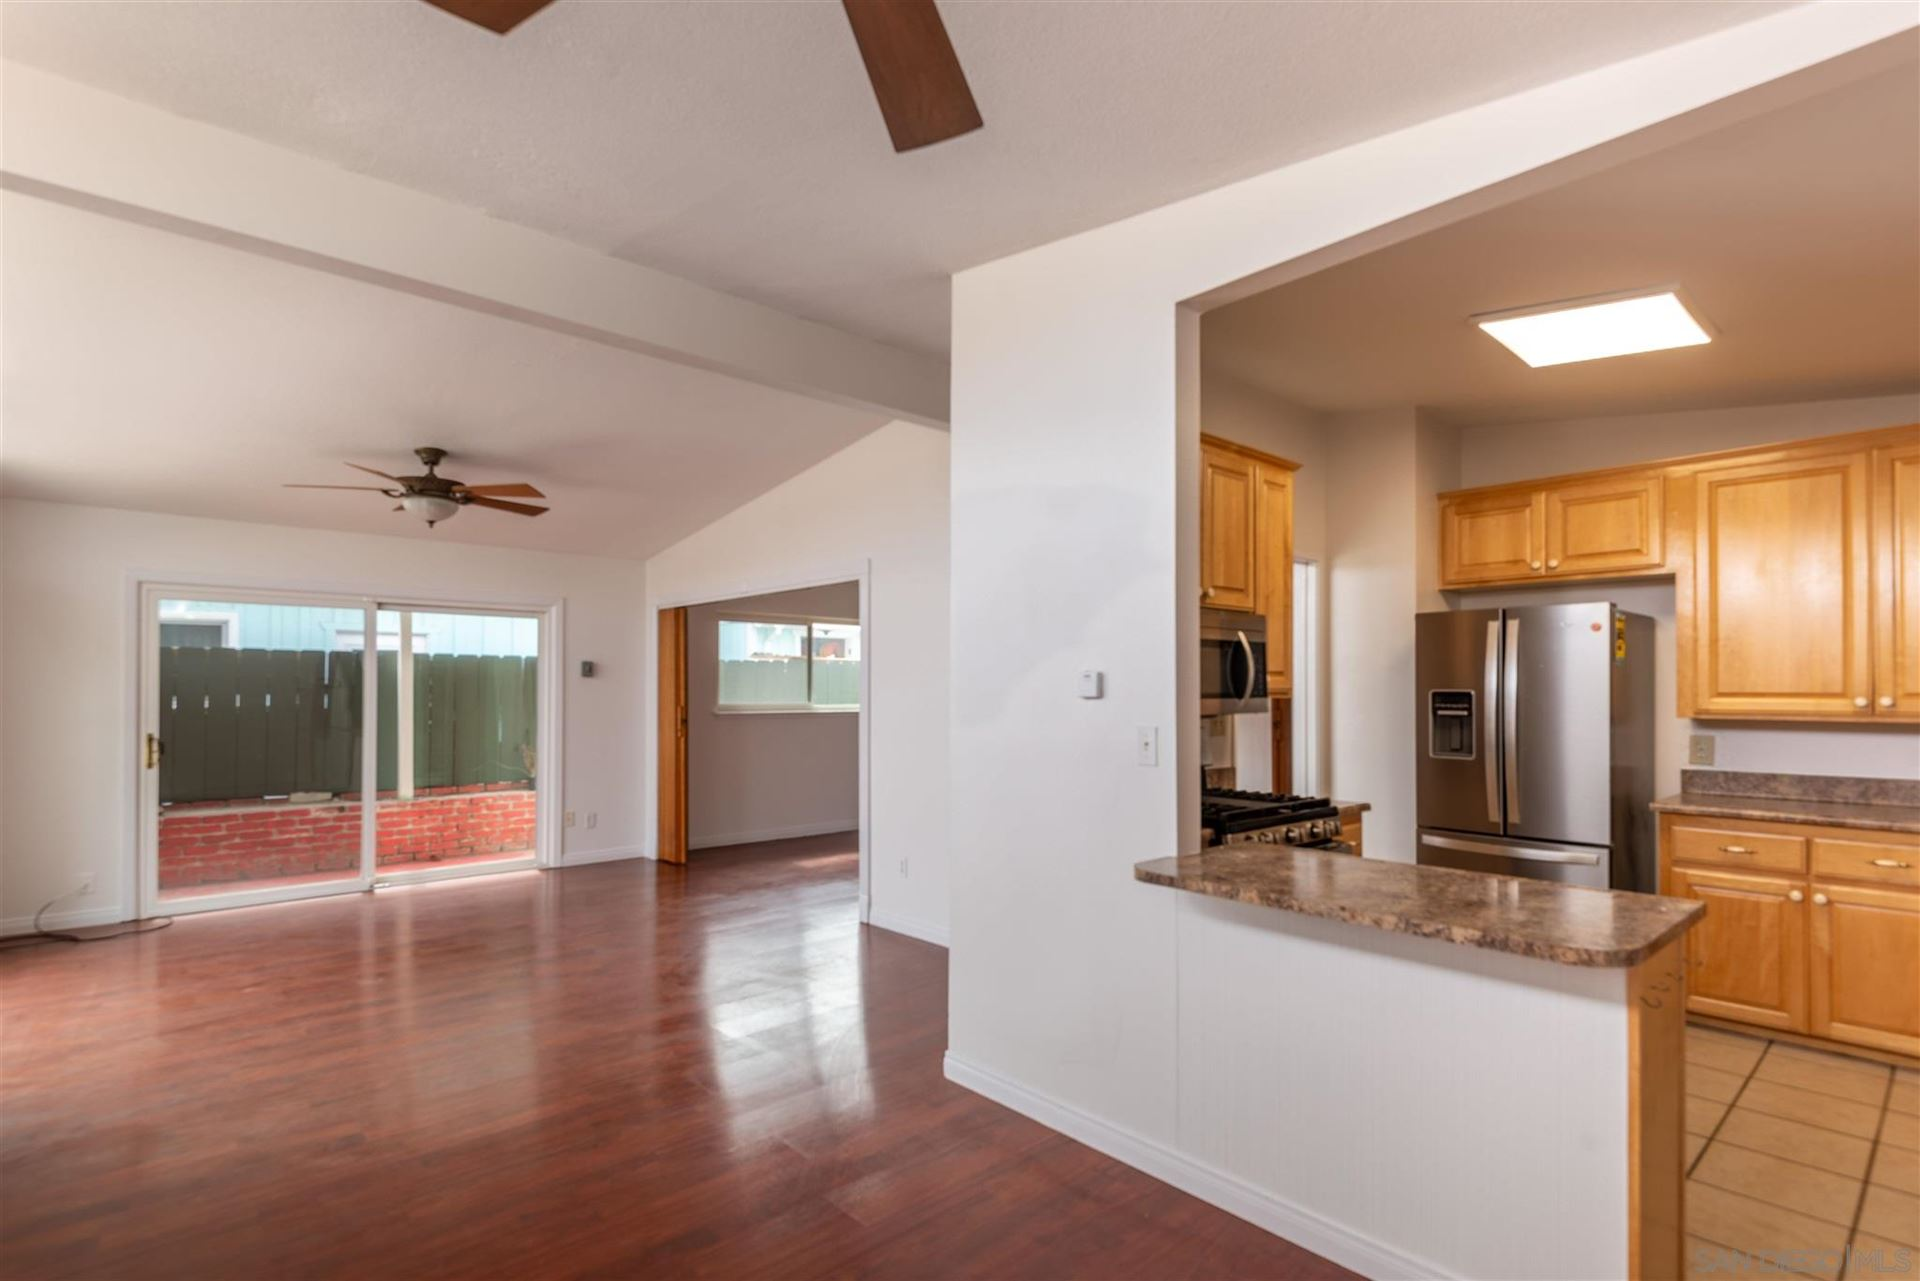 Photo of 323 Donax Ave, Imperial Beach, CA 91932 (MLS # 210021756)